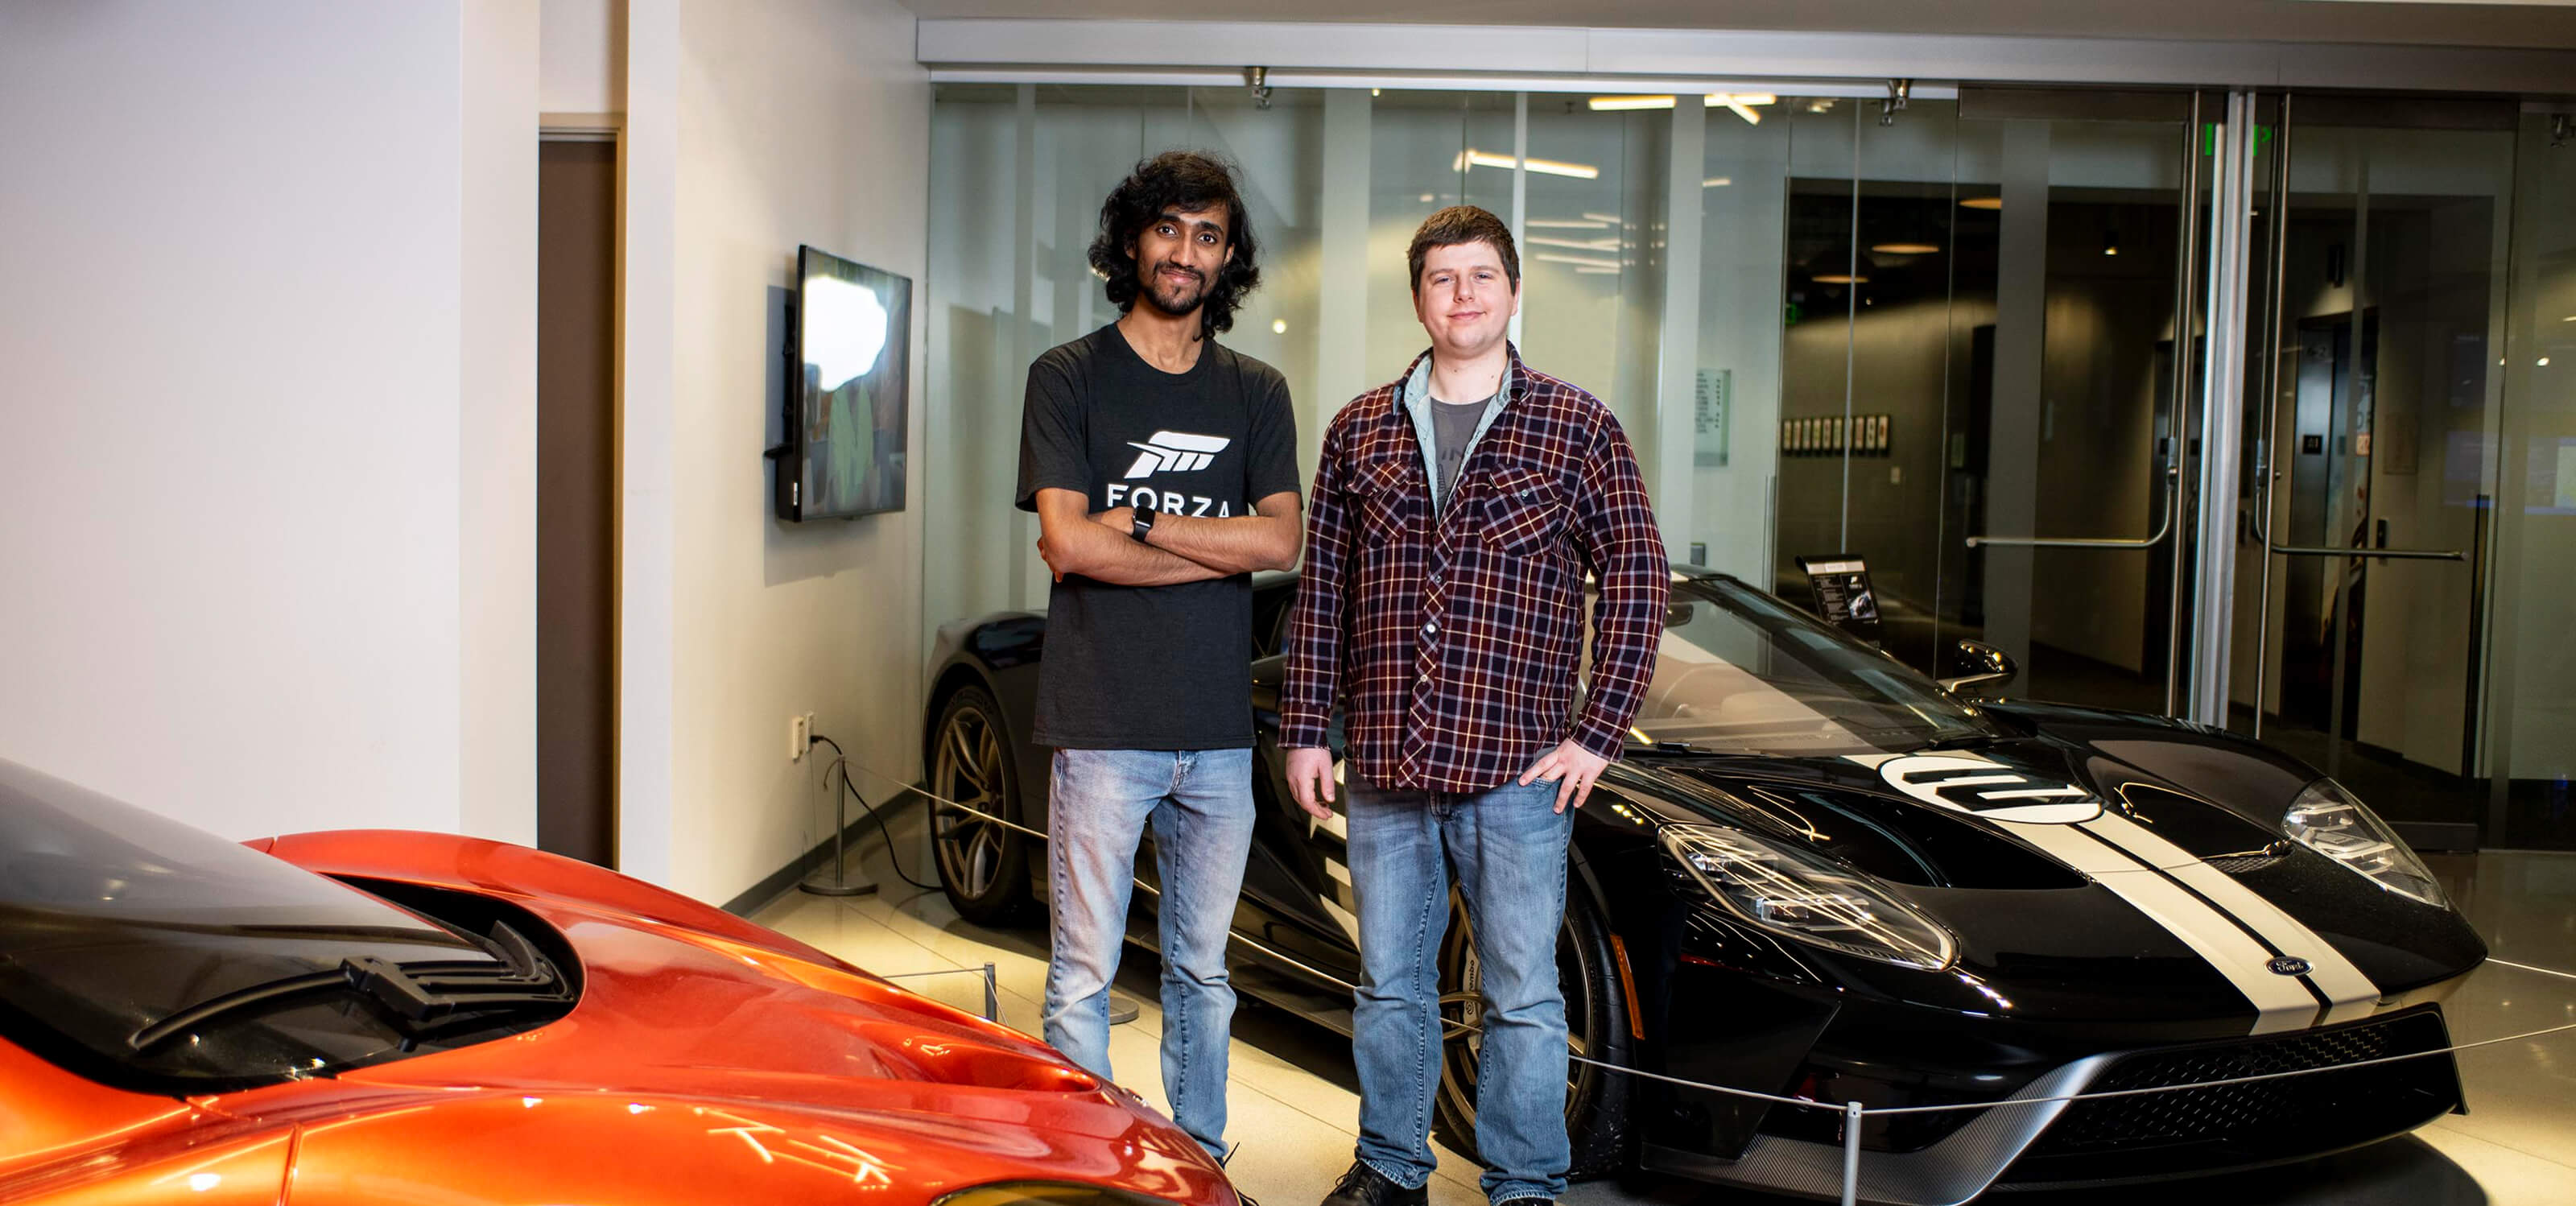 Michael Pitaniello and Deepak Chennakkadan stand next to luxury cars in the Turn 10 Studios lobby.